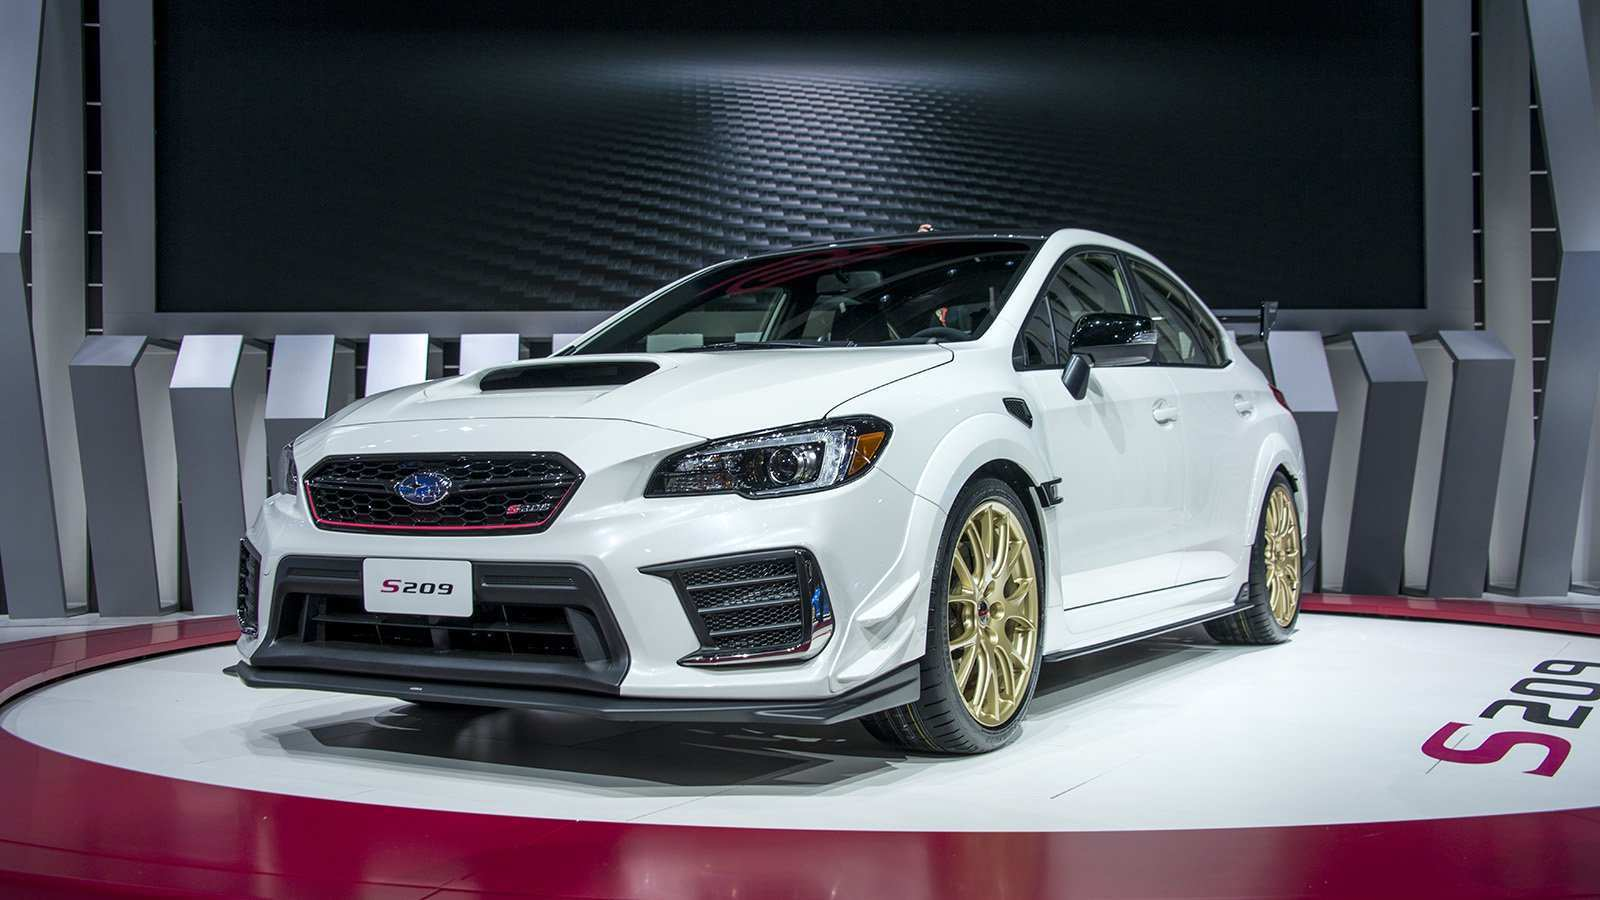 65 The Best Subaru Sti 2020 Horsepower New Review